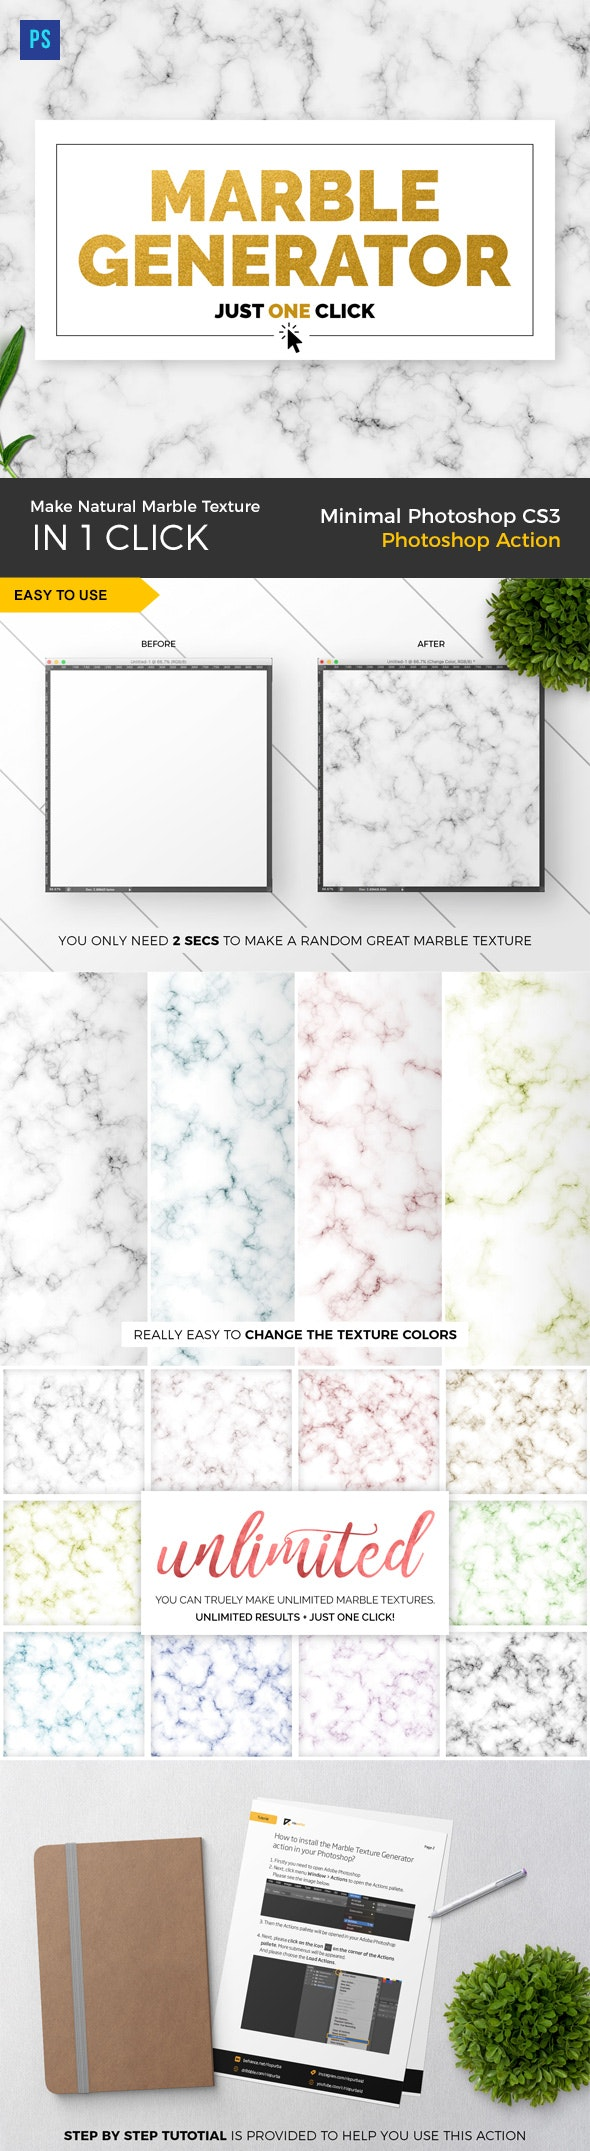 Marble Texture Generator PS Action - Textures / Fills / Patterns Photoshop